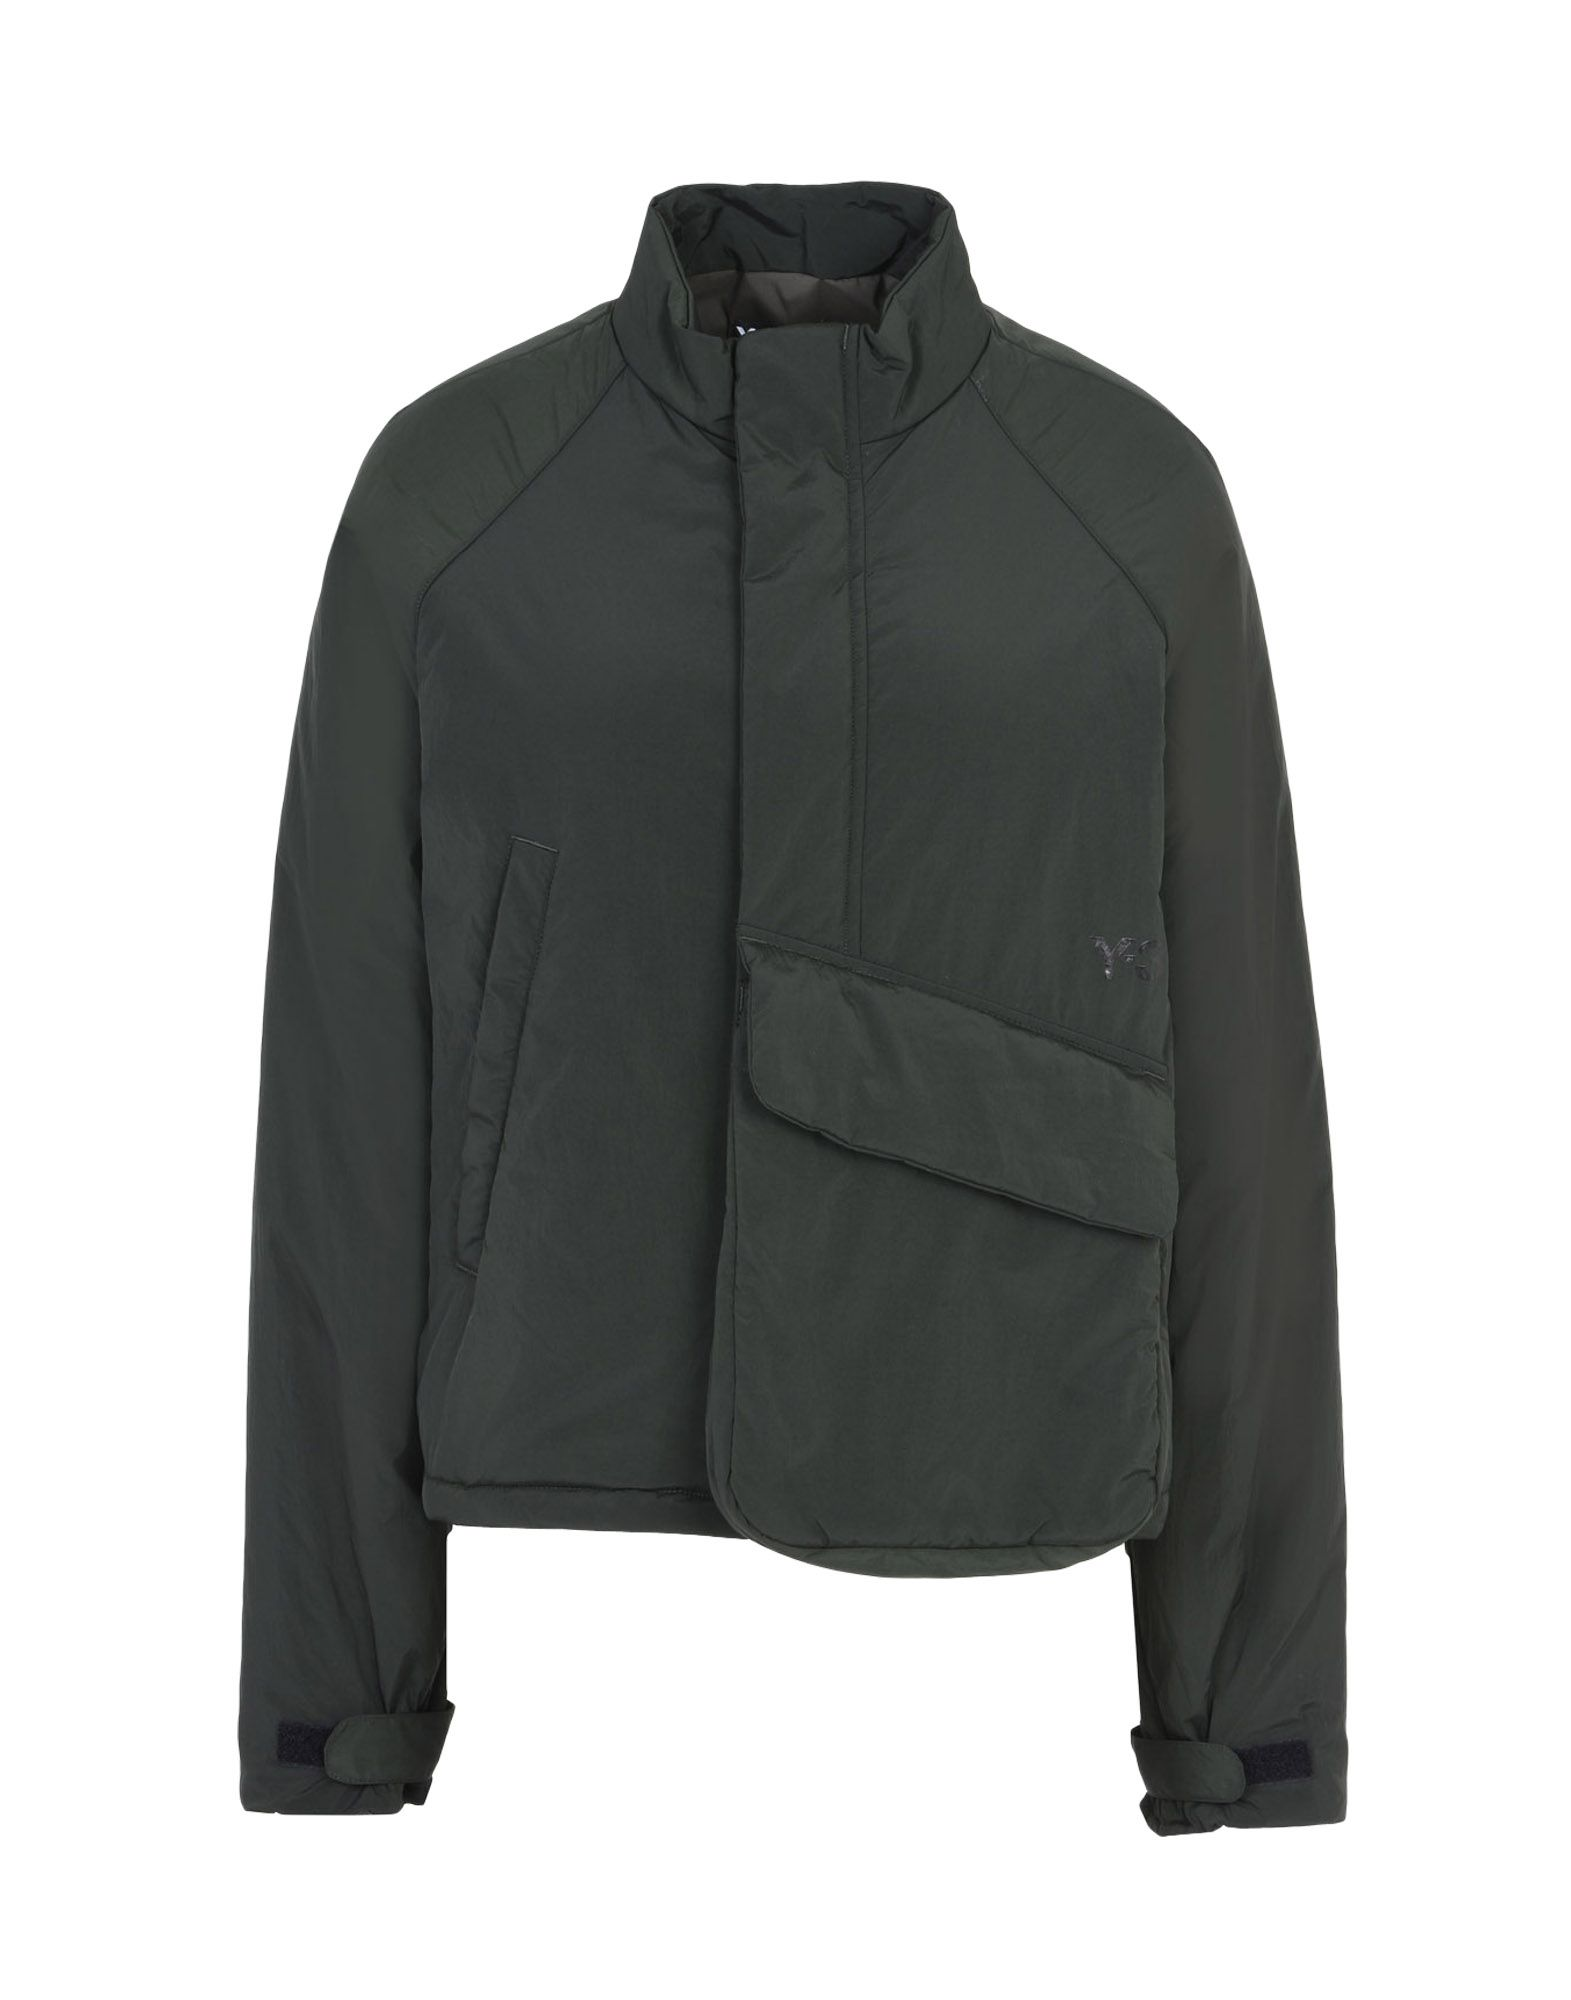 y 3 padded short jacket jackets for women adidas y 3 official store #1: wn 14 f